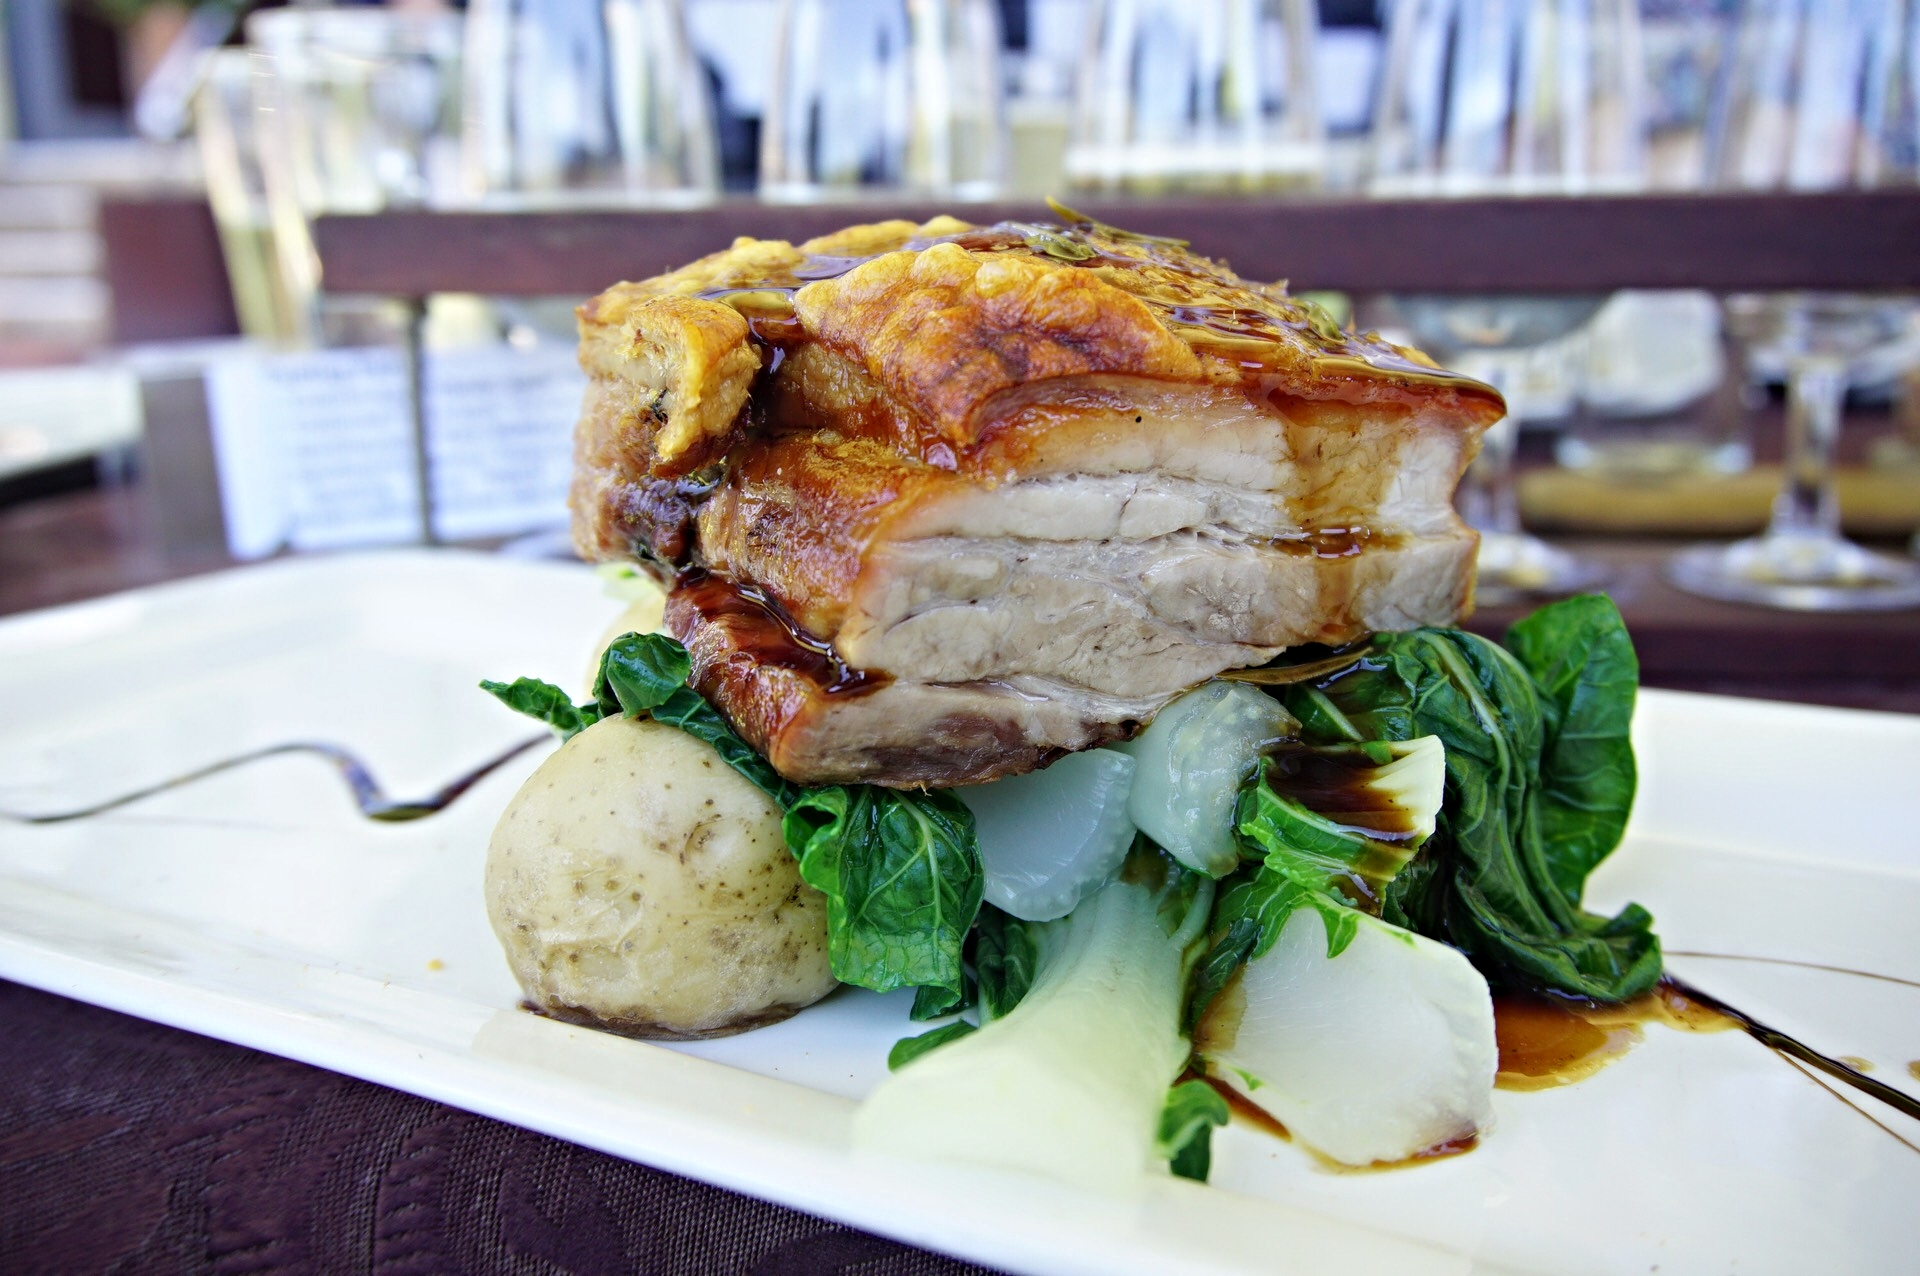 the core pork belly Core Cider House